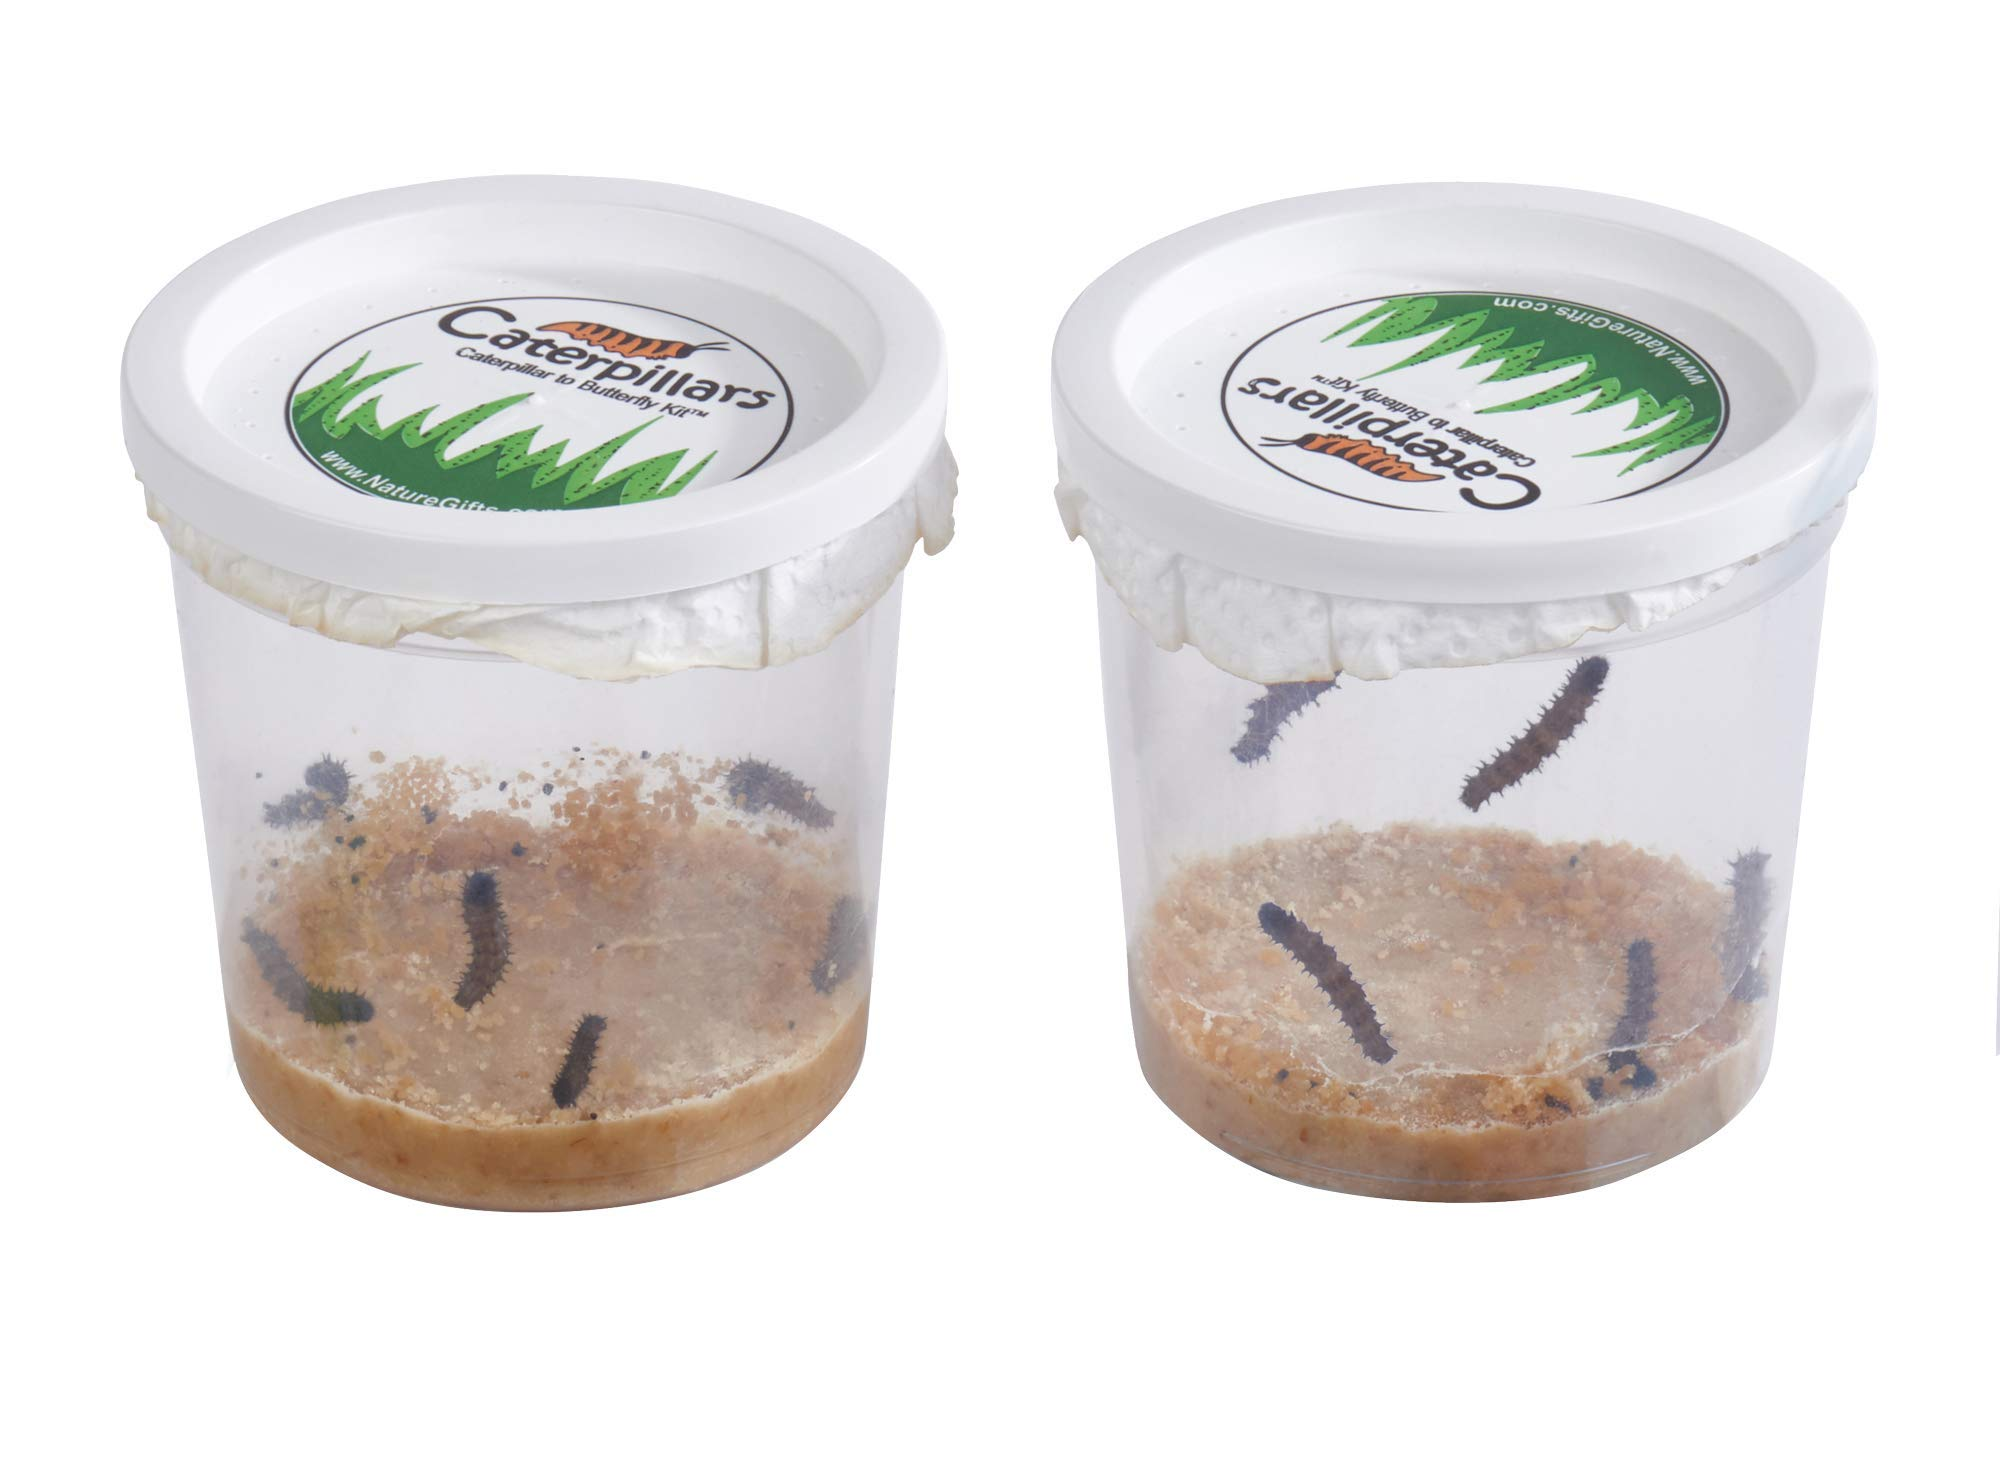 Nature Gift Store 10 Live Caterpillars Shipped Now- Butterfly Kit Refill ONLY